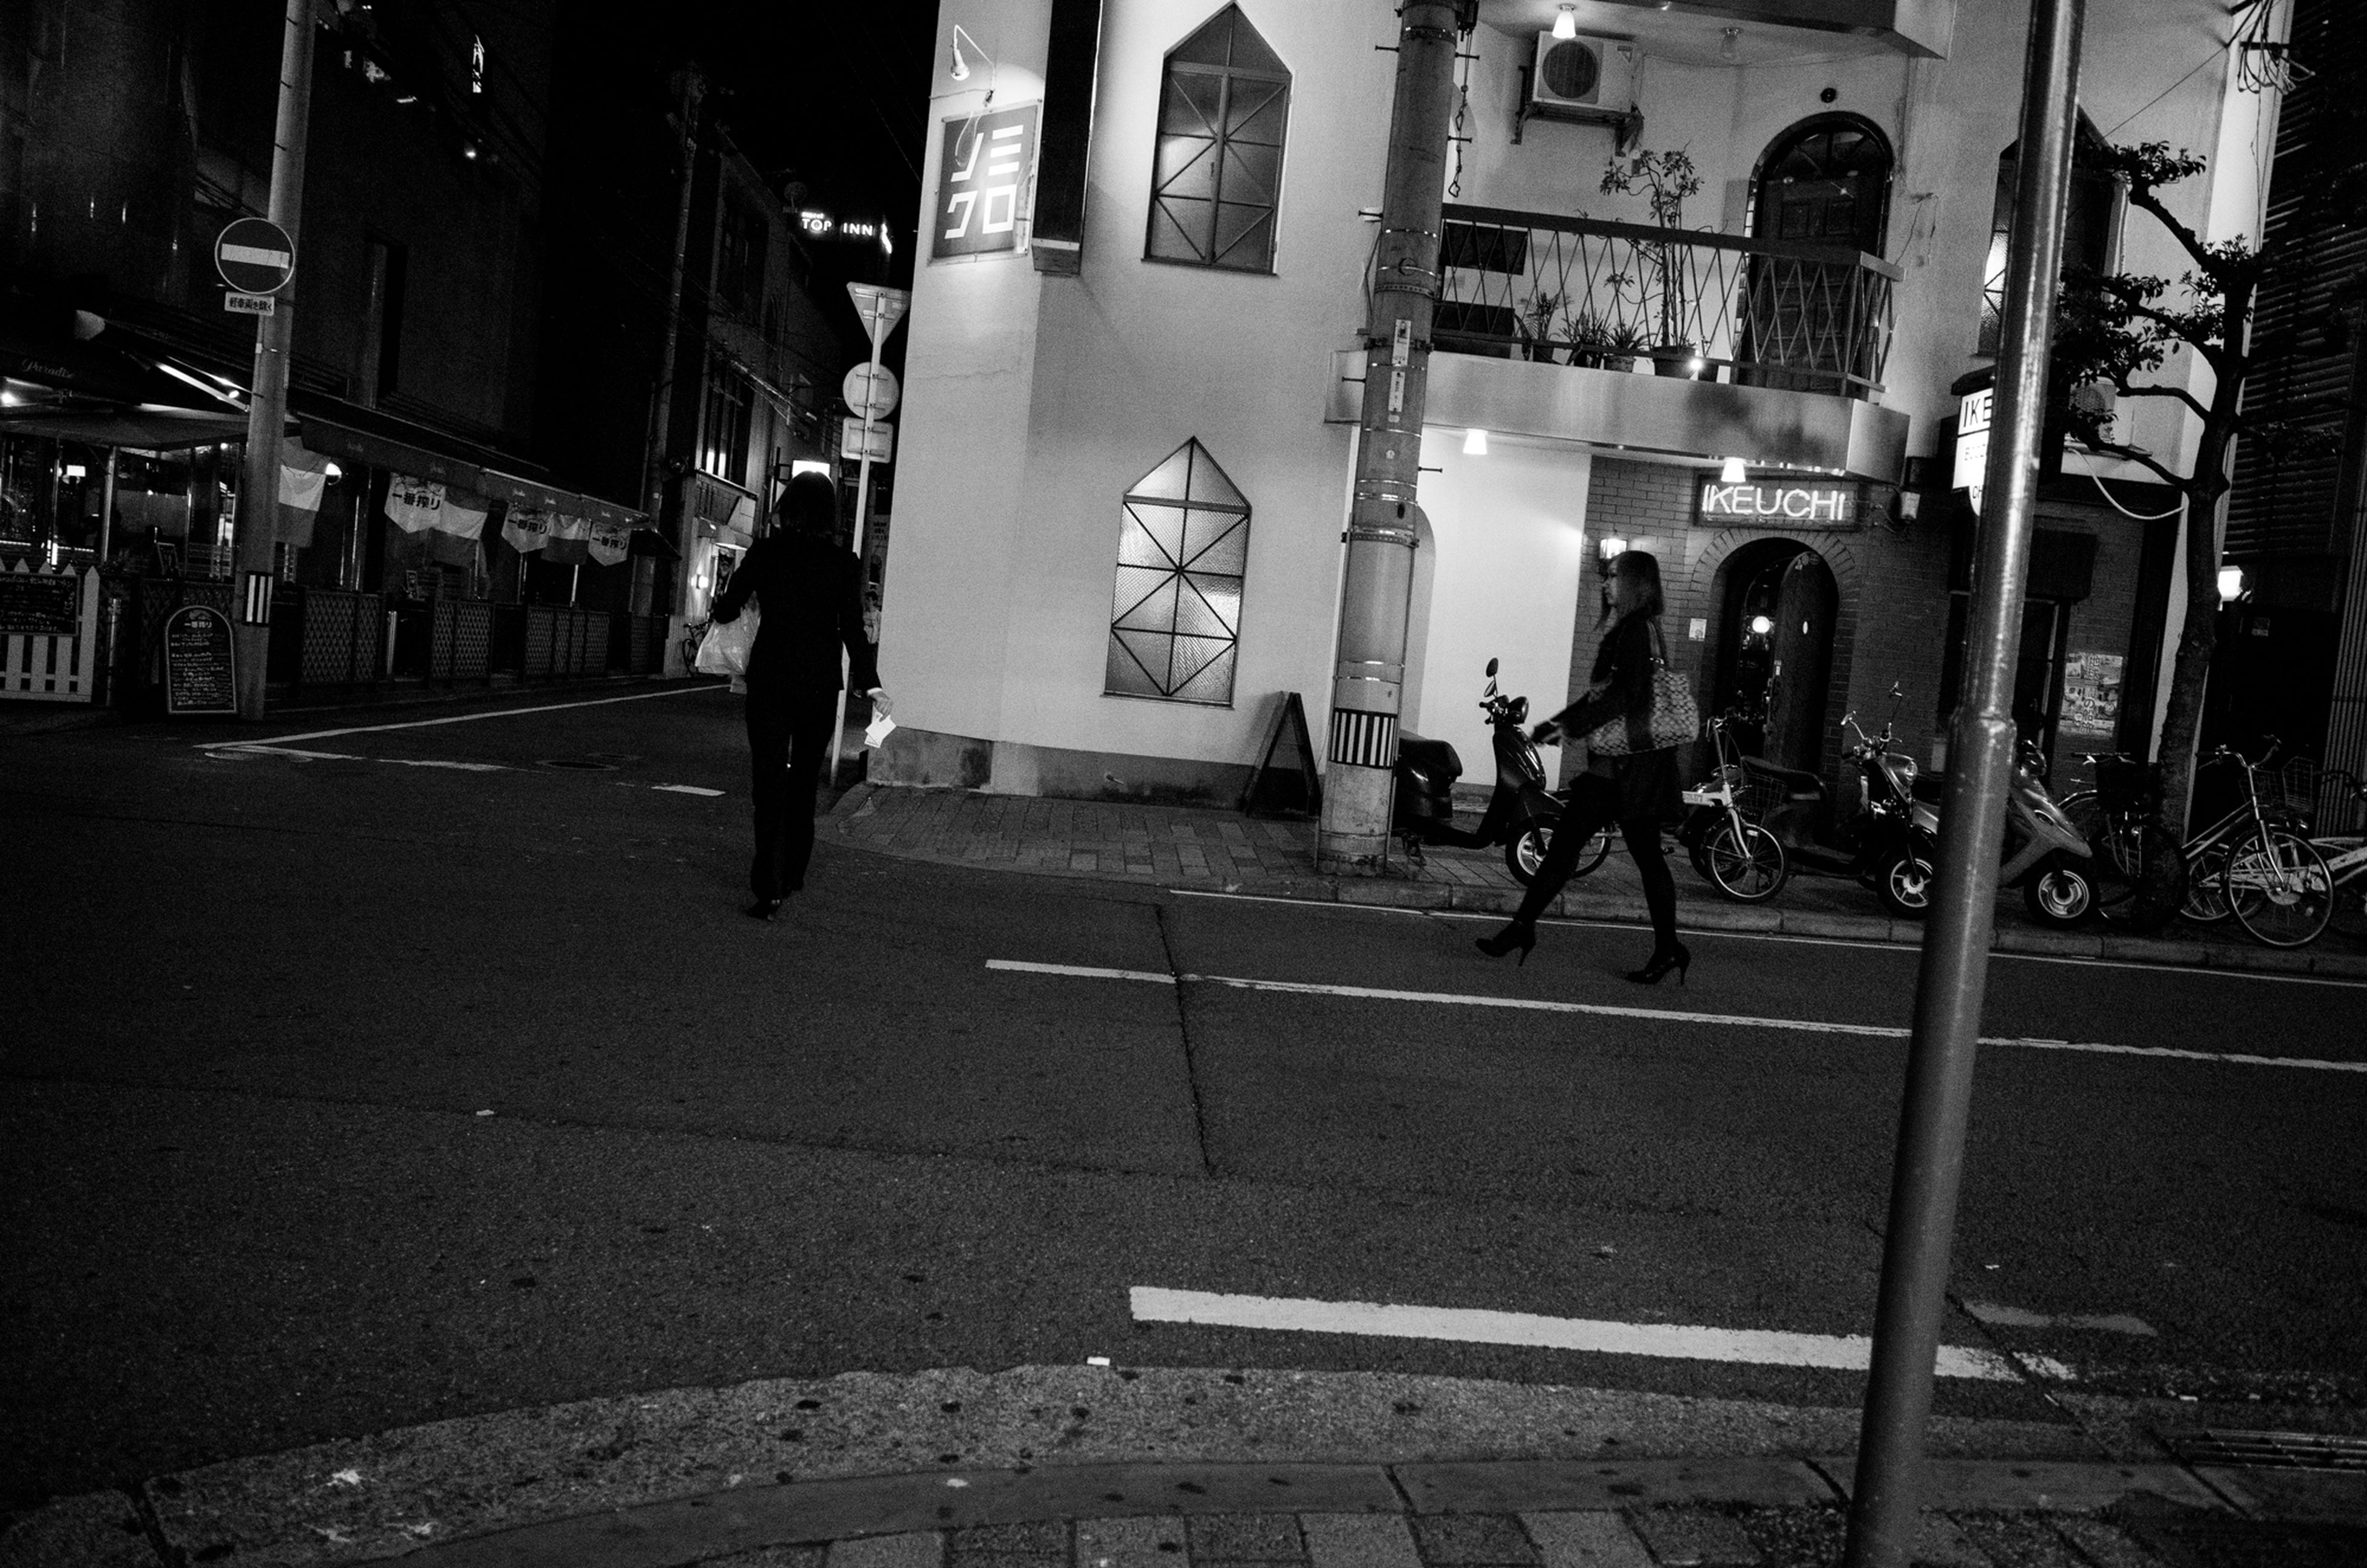 men, building exterior, architecture, built structure, street, lifestyles, walking, city, person, city life, leisure activity, full length, rear view, night, standing, outdoors, incidental people